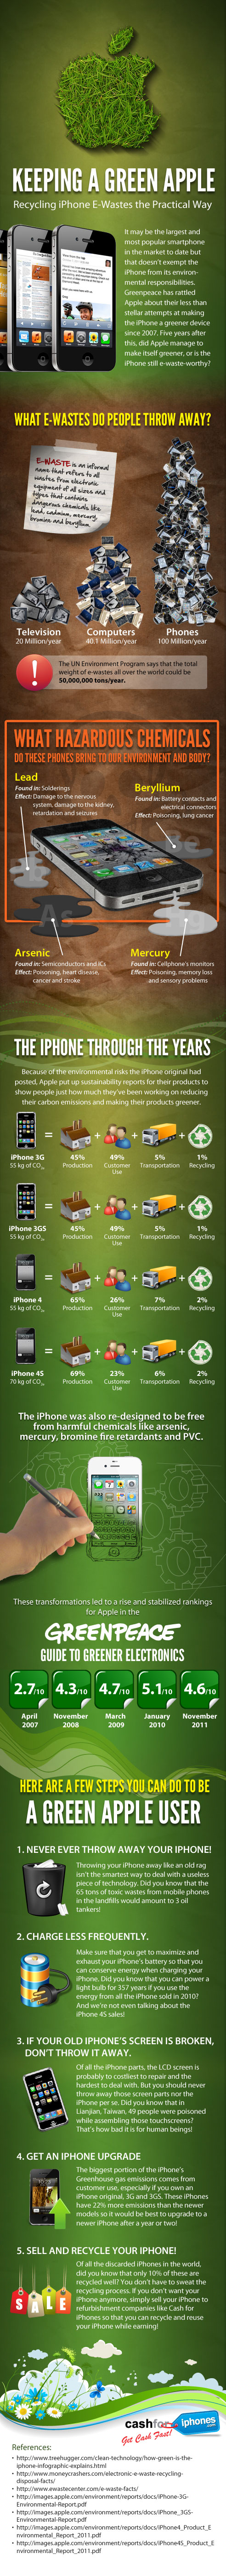 Keeping a Green Apple: Recycling iPhones